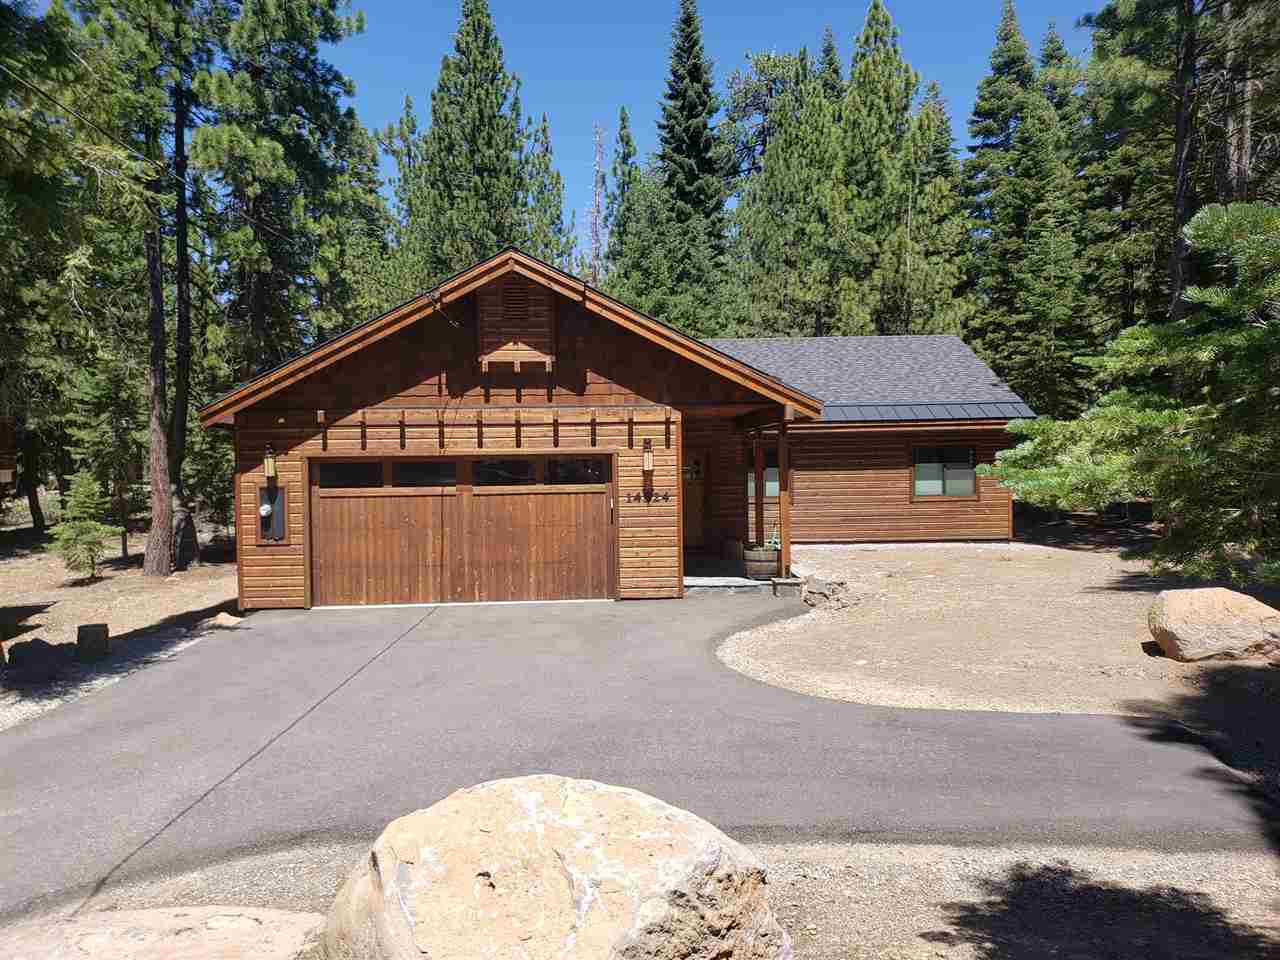 Image for 11480 Lausanne Way, Truckee, CA 96161